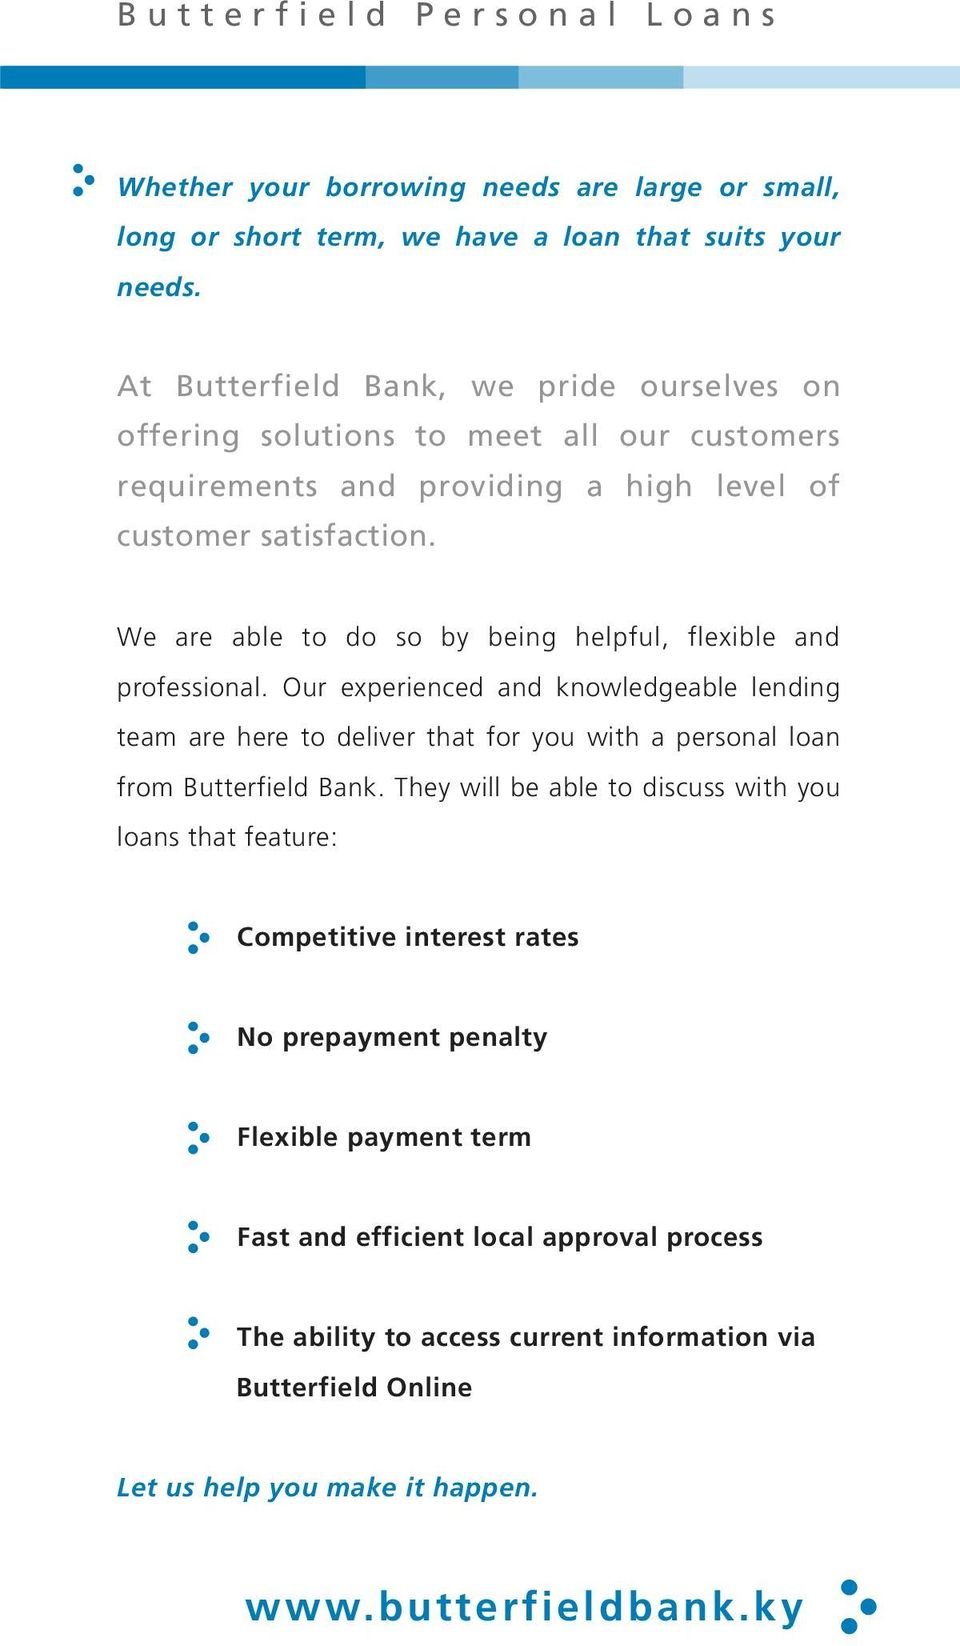 We are able to do so by being helpful, flexible and professional. Our experienced and knowledgeable lending team are here to deliver that for you with a personal loan from Butterfield Bank.